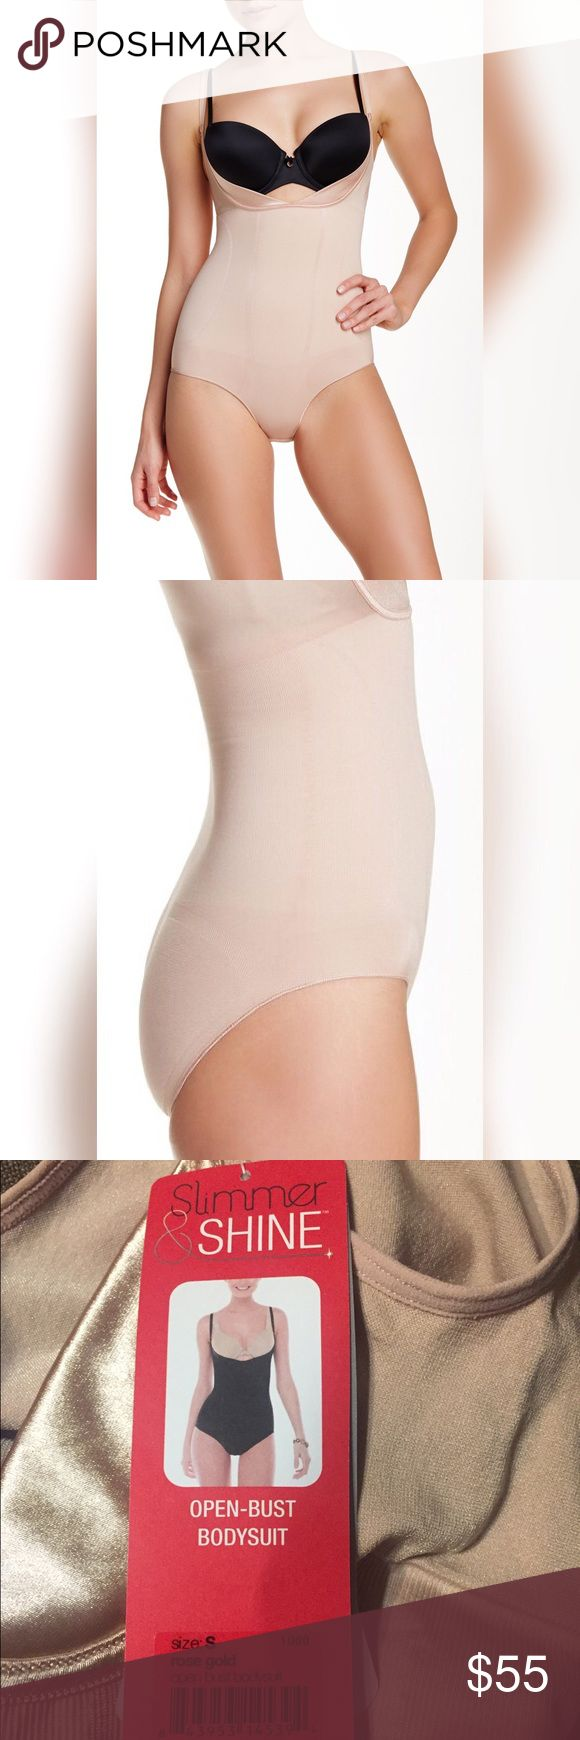 🆕 SPANX Open Bust Bodysuit ROSE GOLD Spanx Bodysuit. A must have to create a beautiful silhouette 😉😀👍. Style 1060 (Sold Out EVERYWHERE ‼️) SPANX Intimates & Sleepwear Shapewear